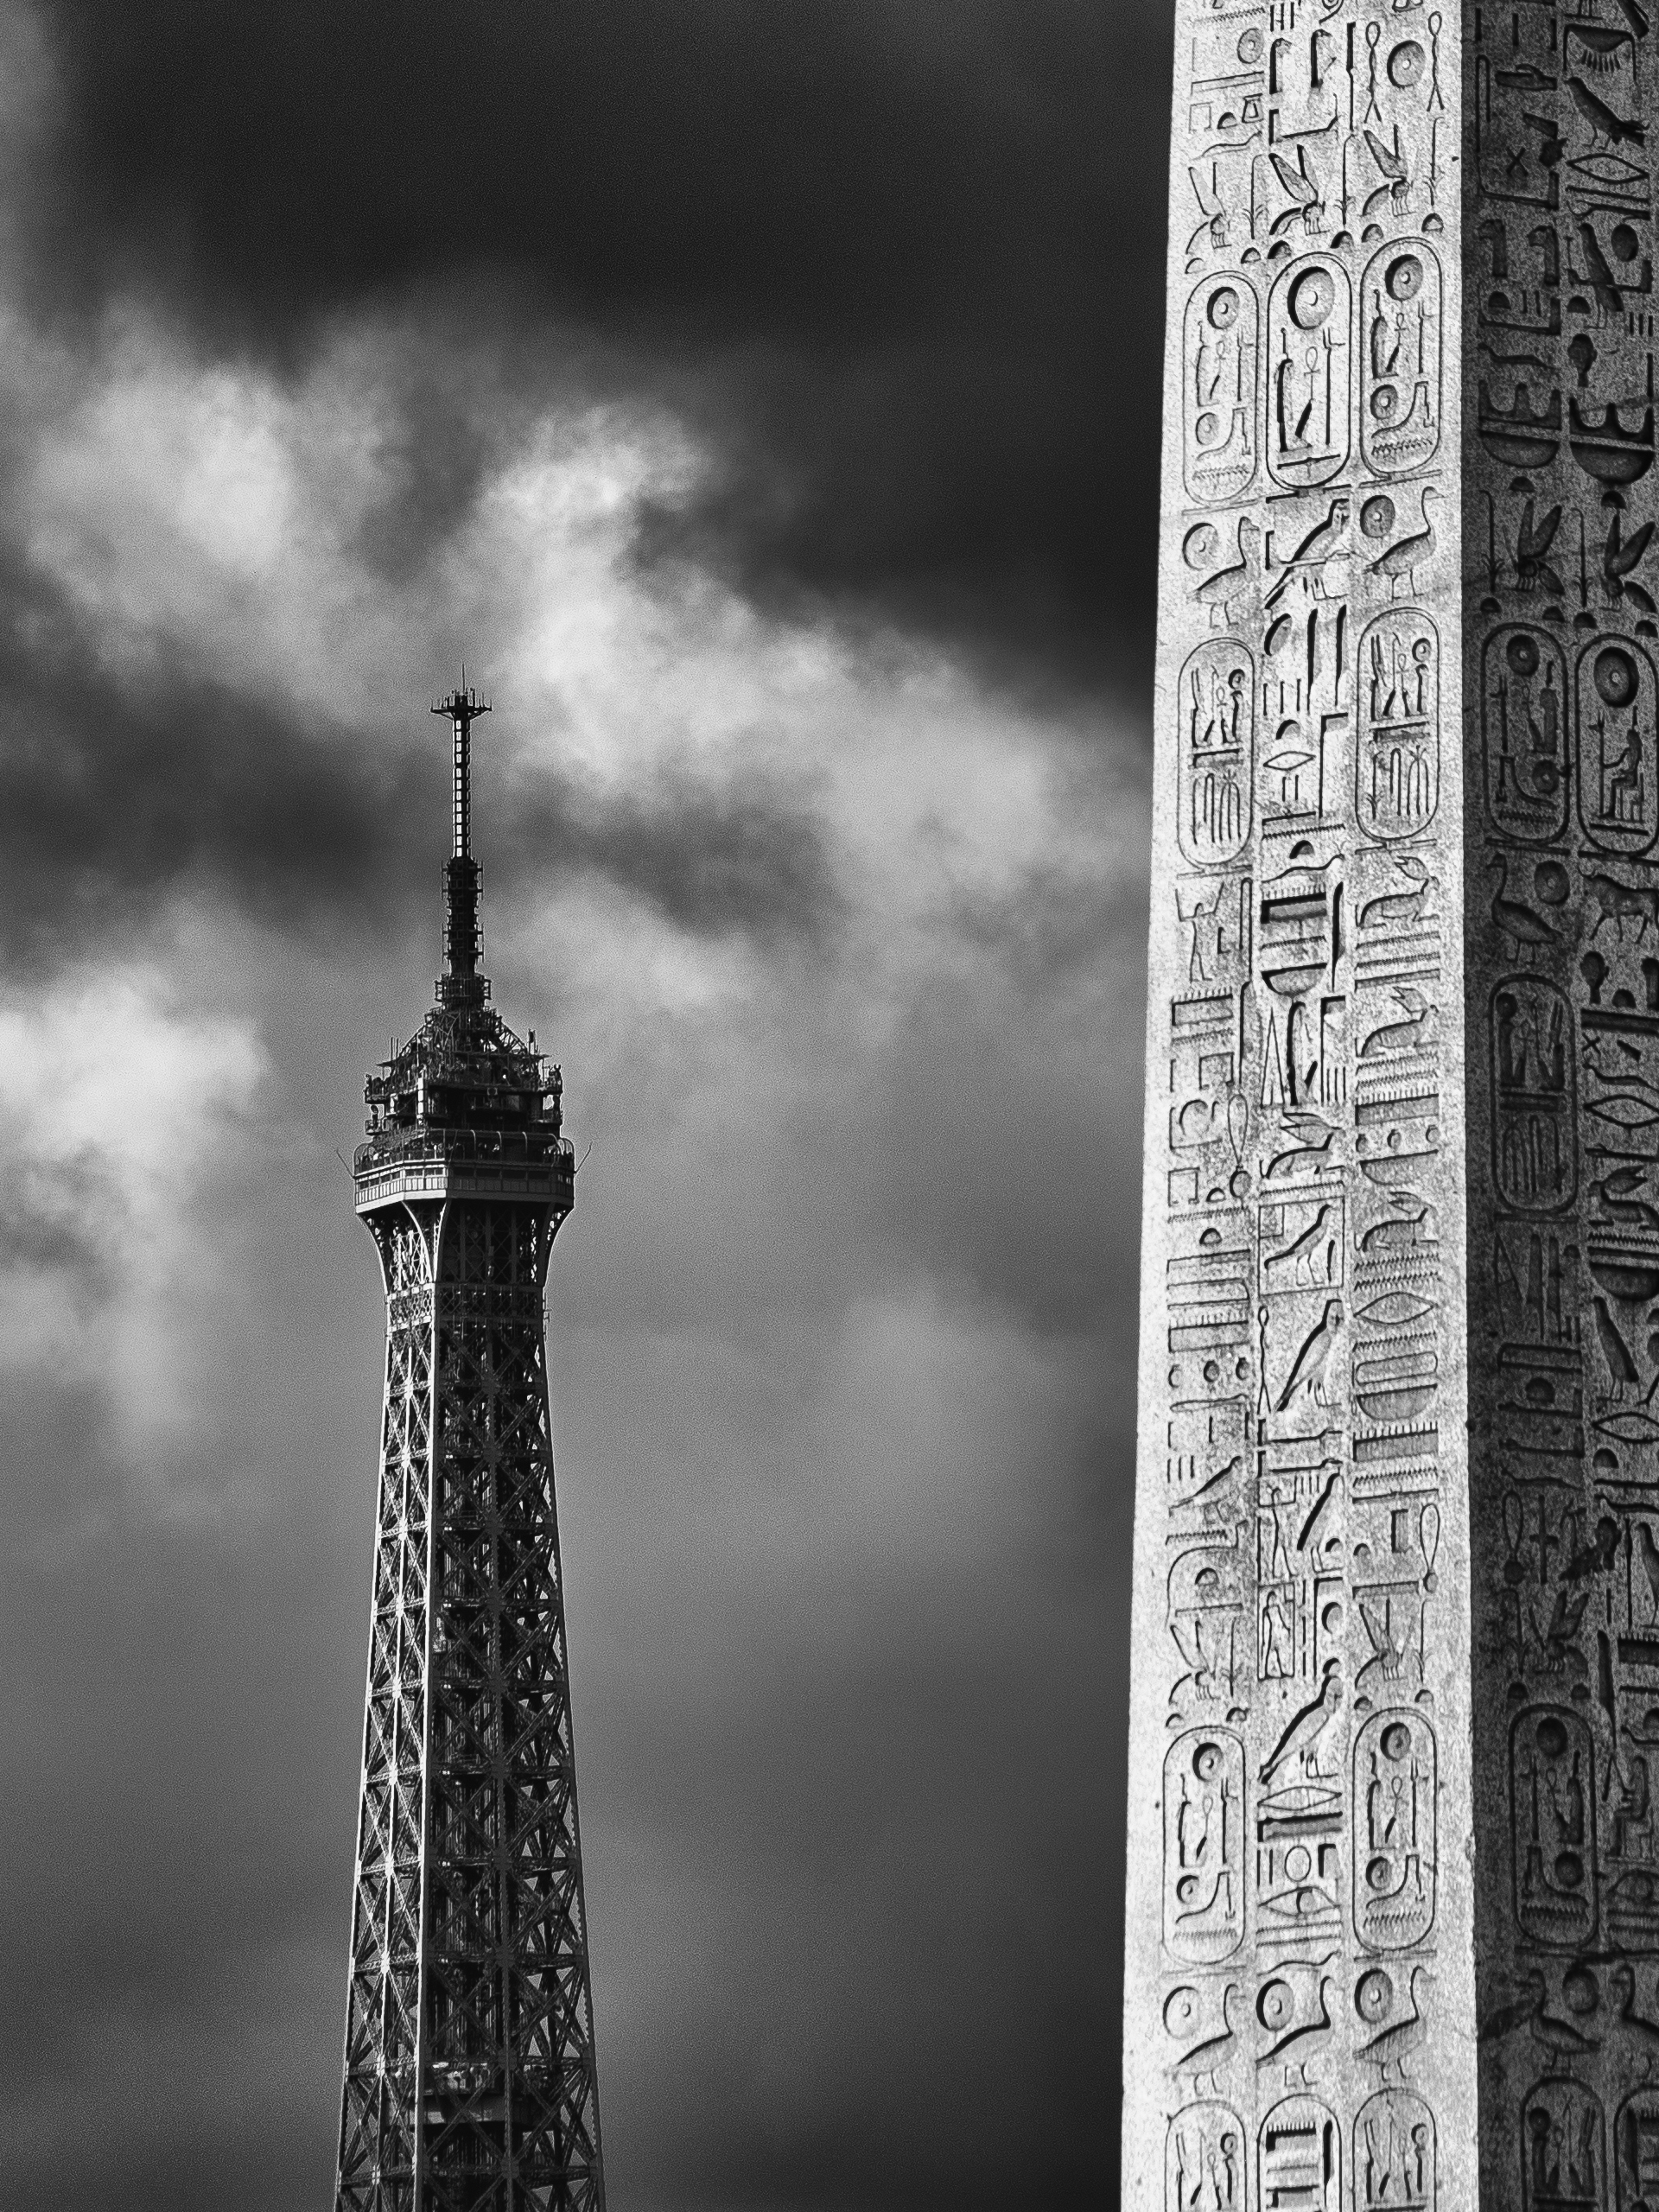 The Tower and the Obelisk